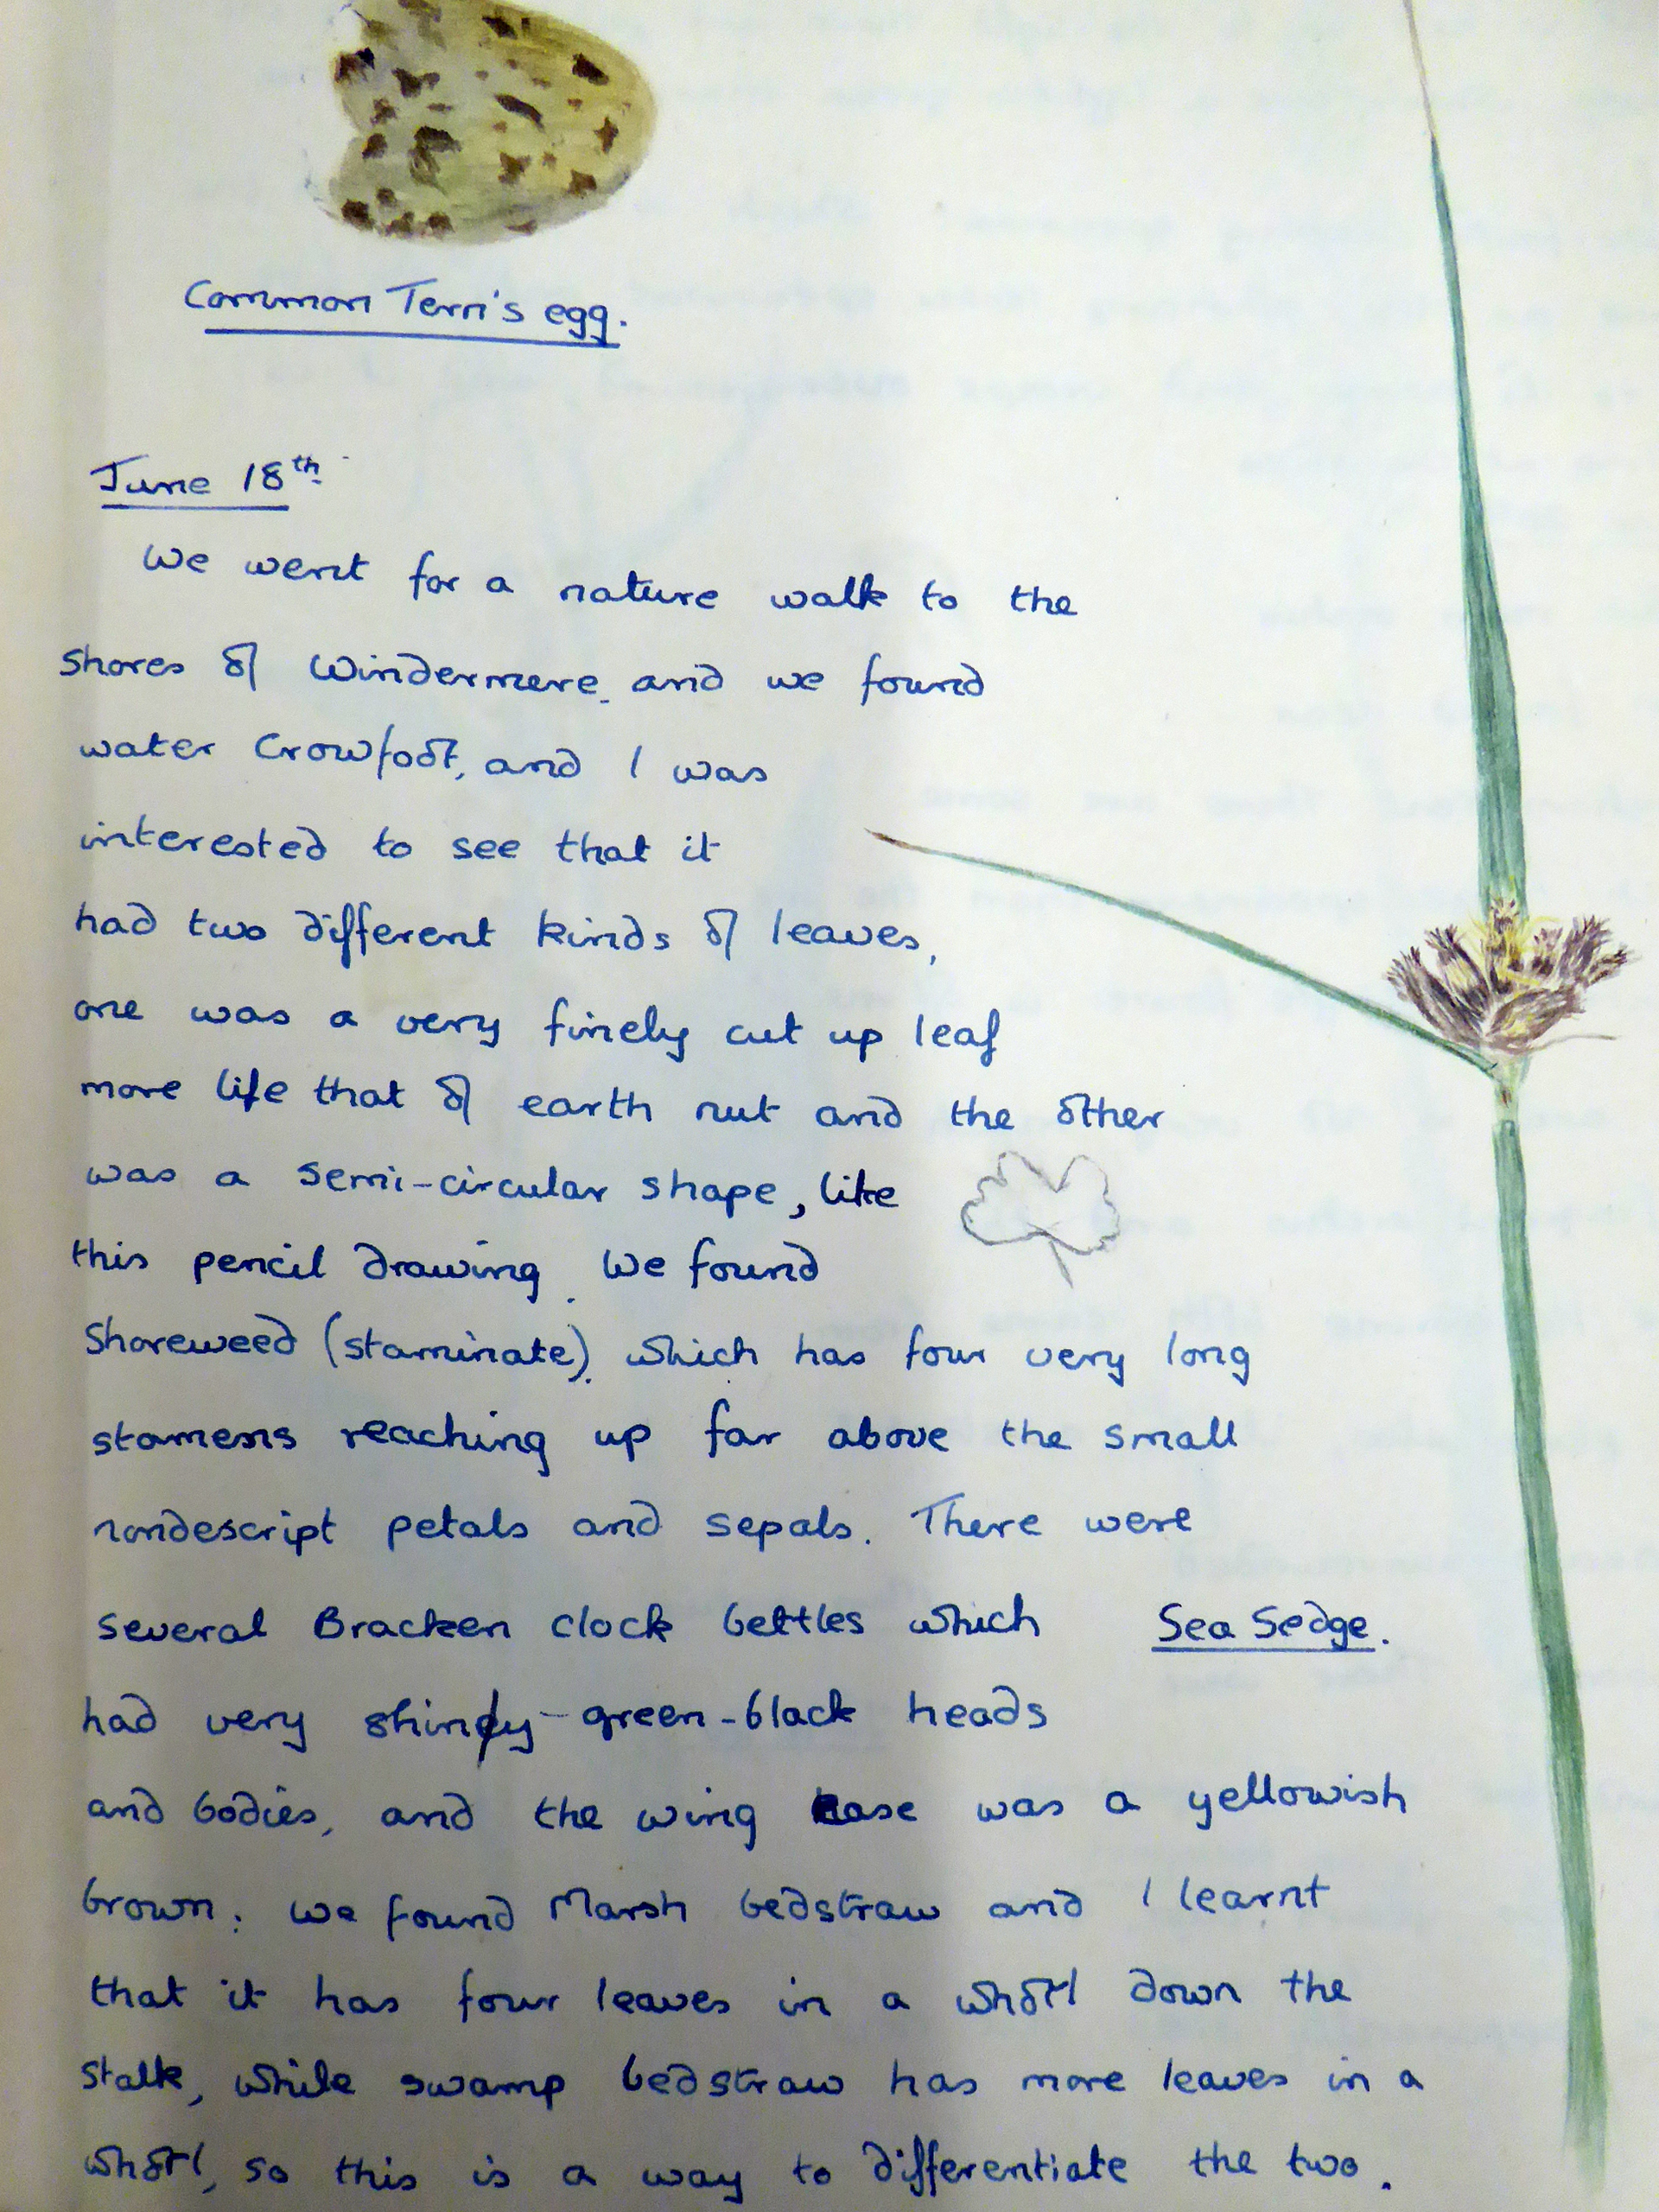 Images of Eve Anderson's Nature Notebook provided by The Armitt Trust